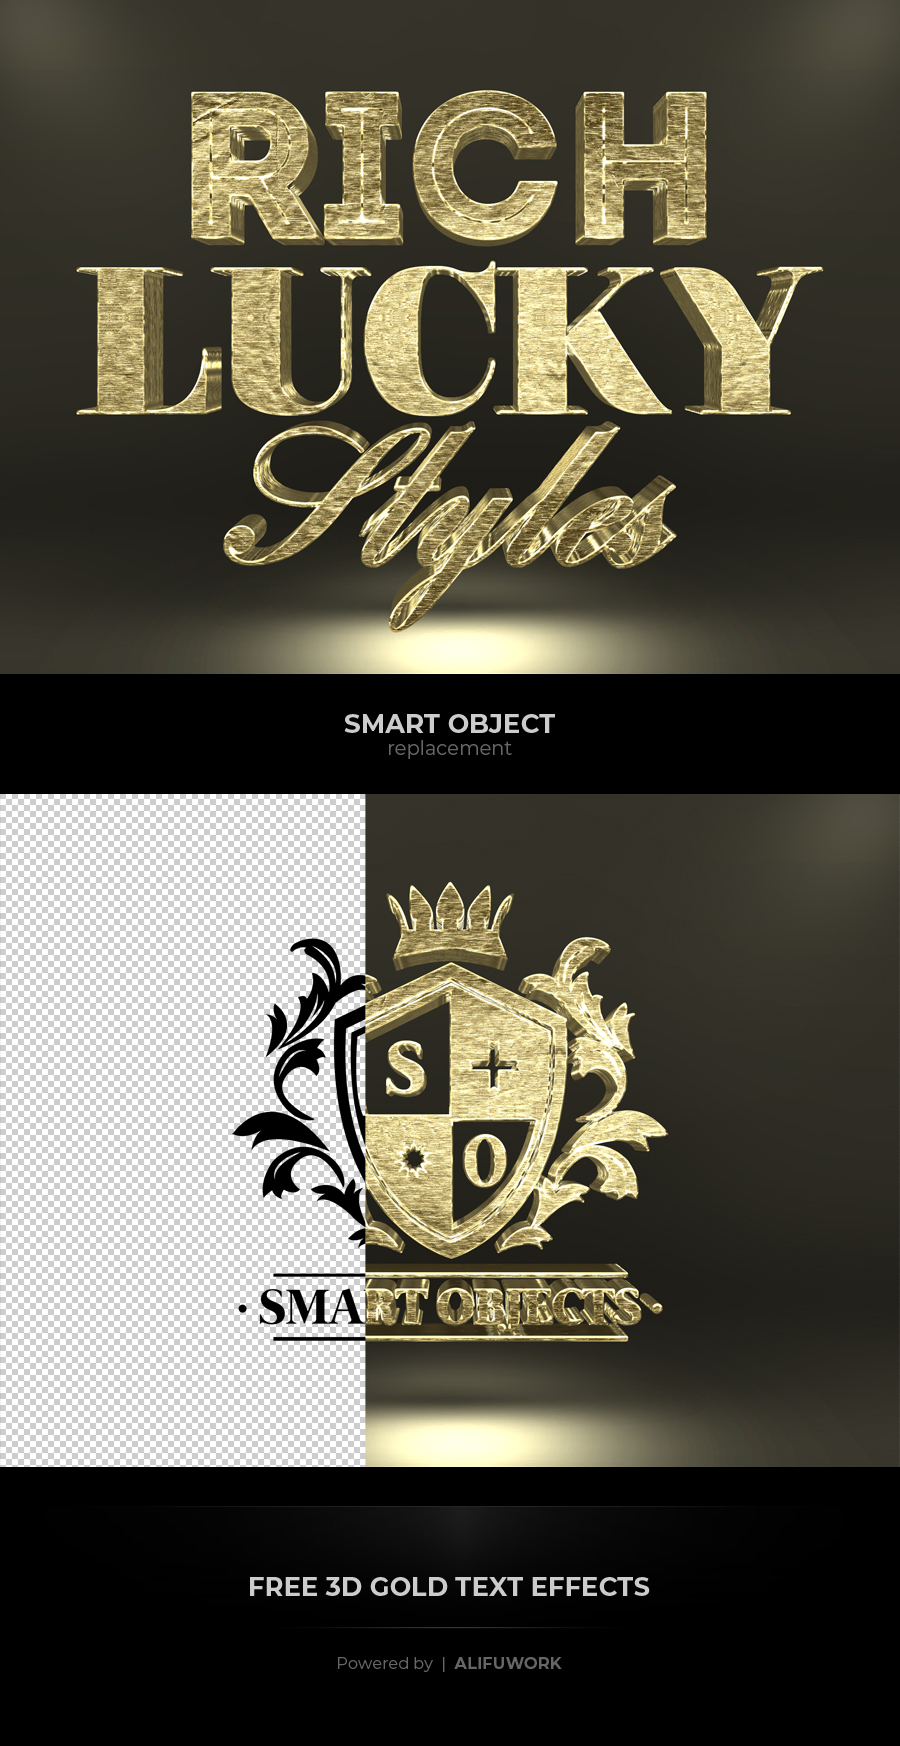 Free 3D Gold Text Effects – Free Design Resources